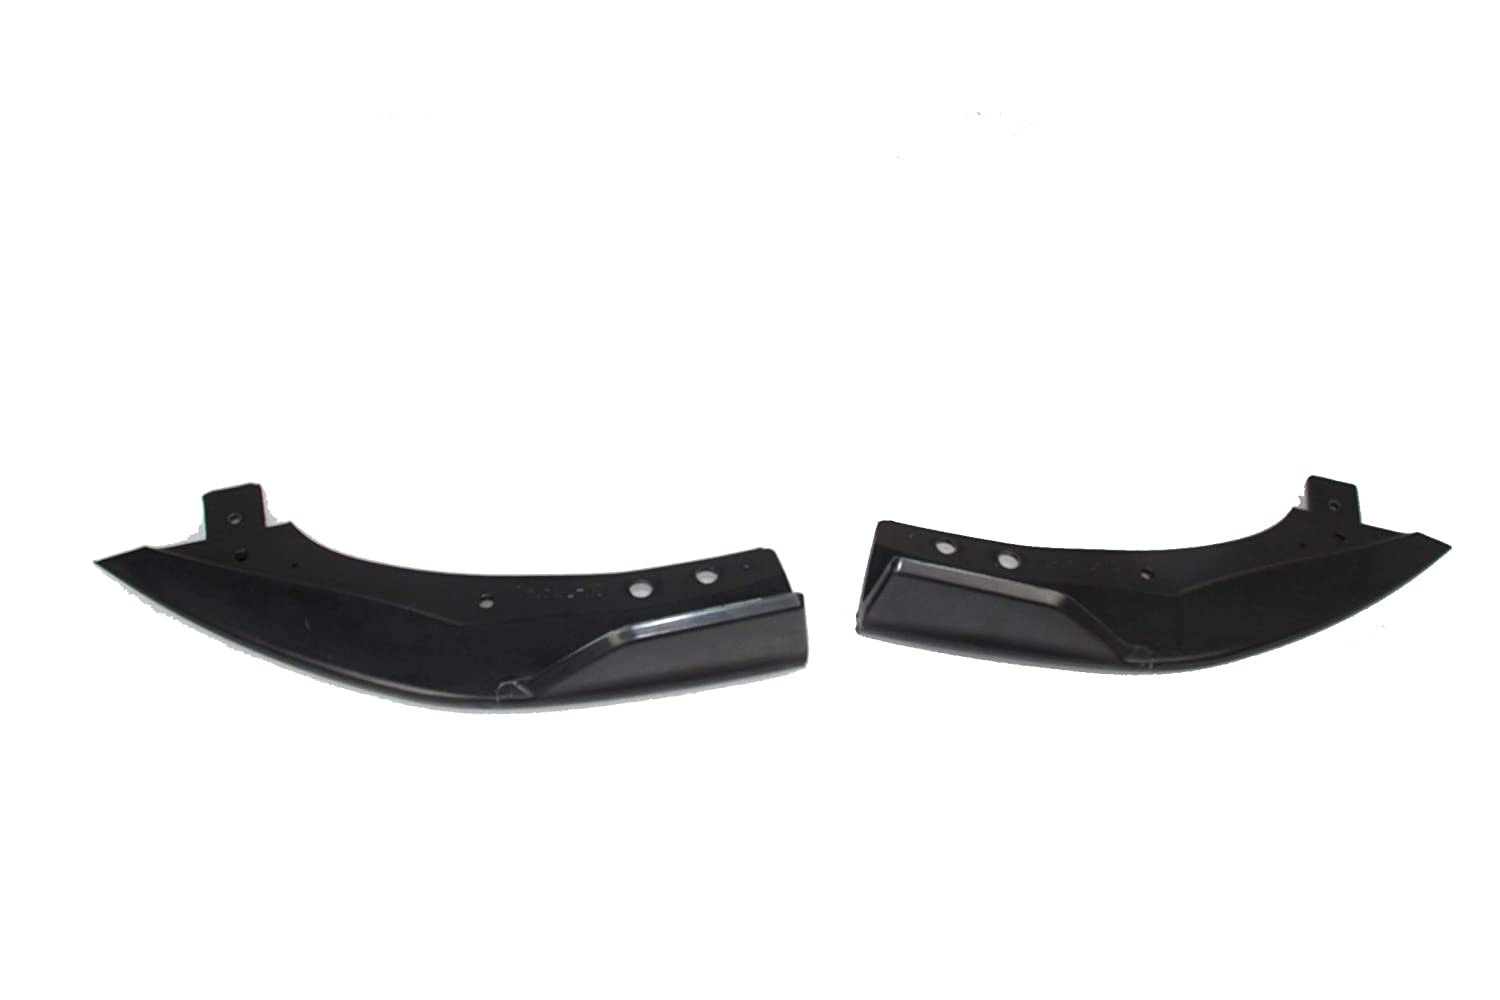 Side Splitter Canard Unpainted T Type Compatible with 2019-On Toyota Corolla Hatchback E210 MZEA12R 5D Rear Diffuser